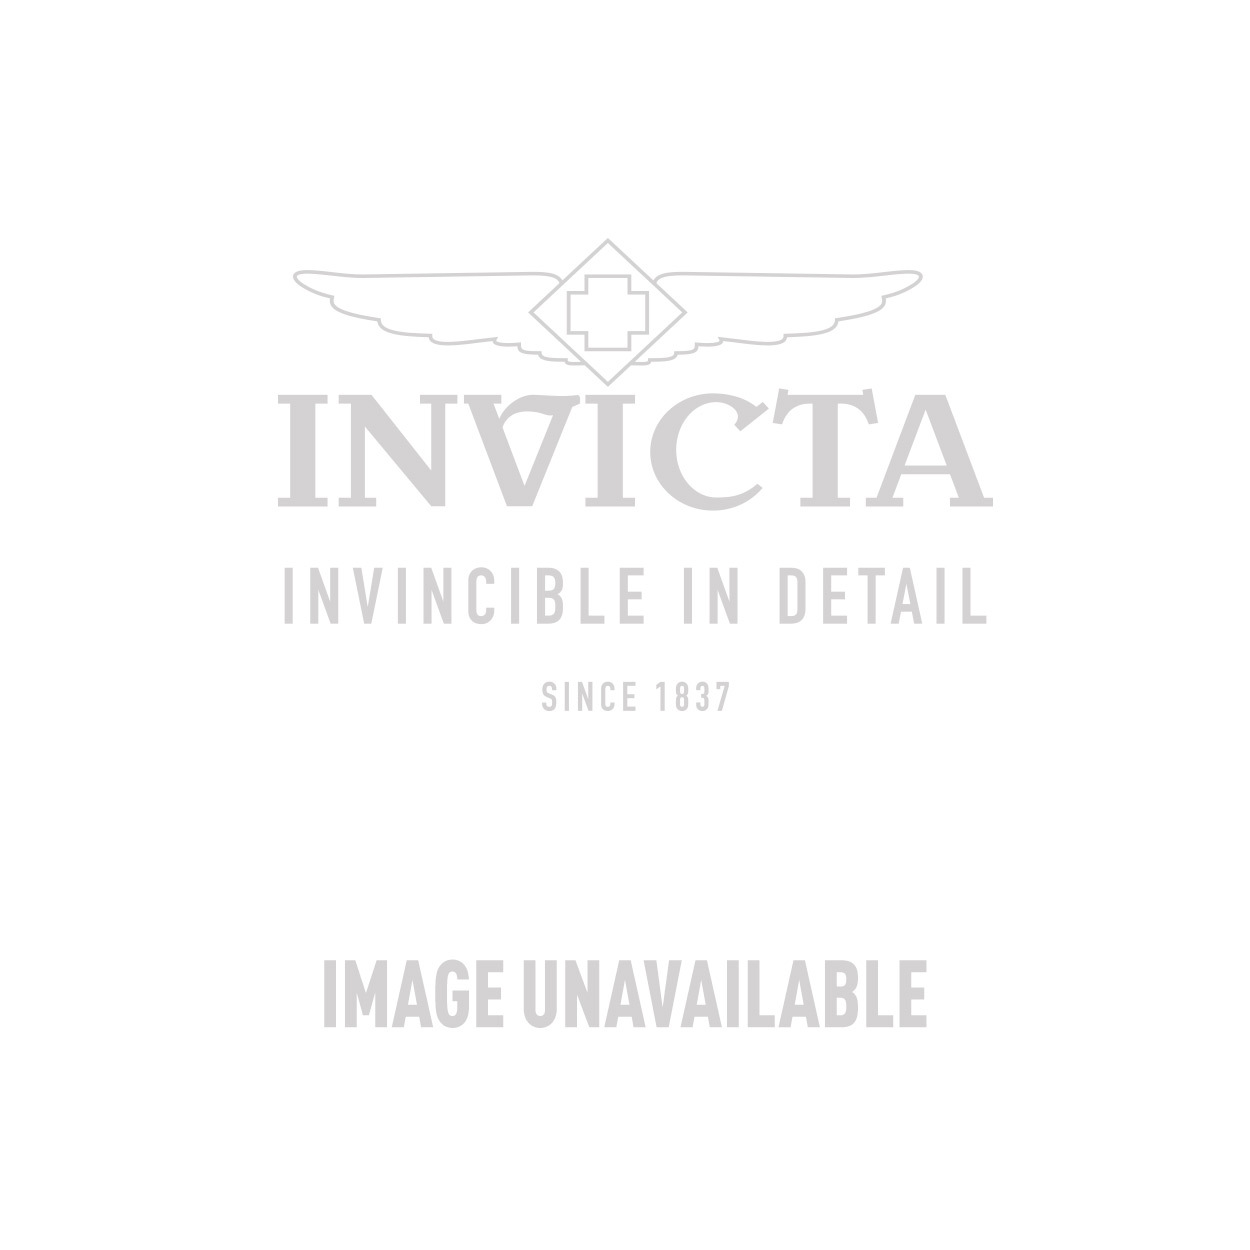 Invicta Sea Base Swiss Made Quartz Watch - Gold, Titanium case with Gold, Titanium tone Titanium band - Model 14259